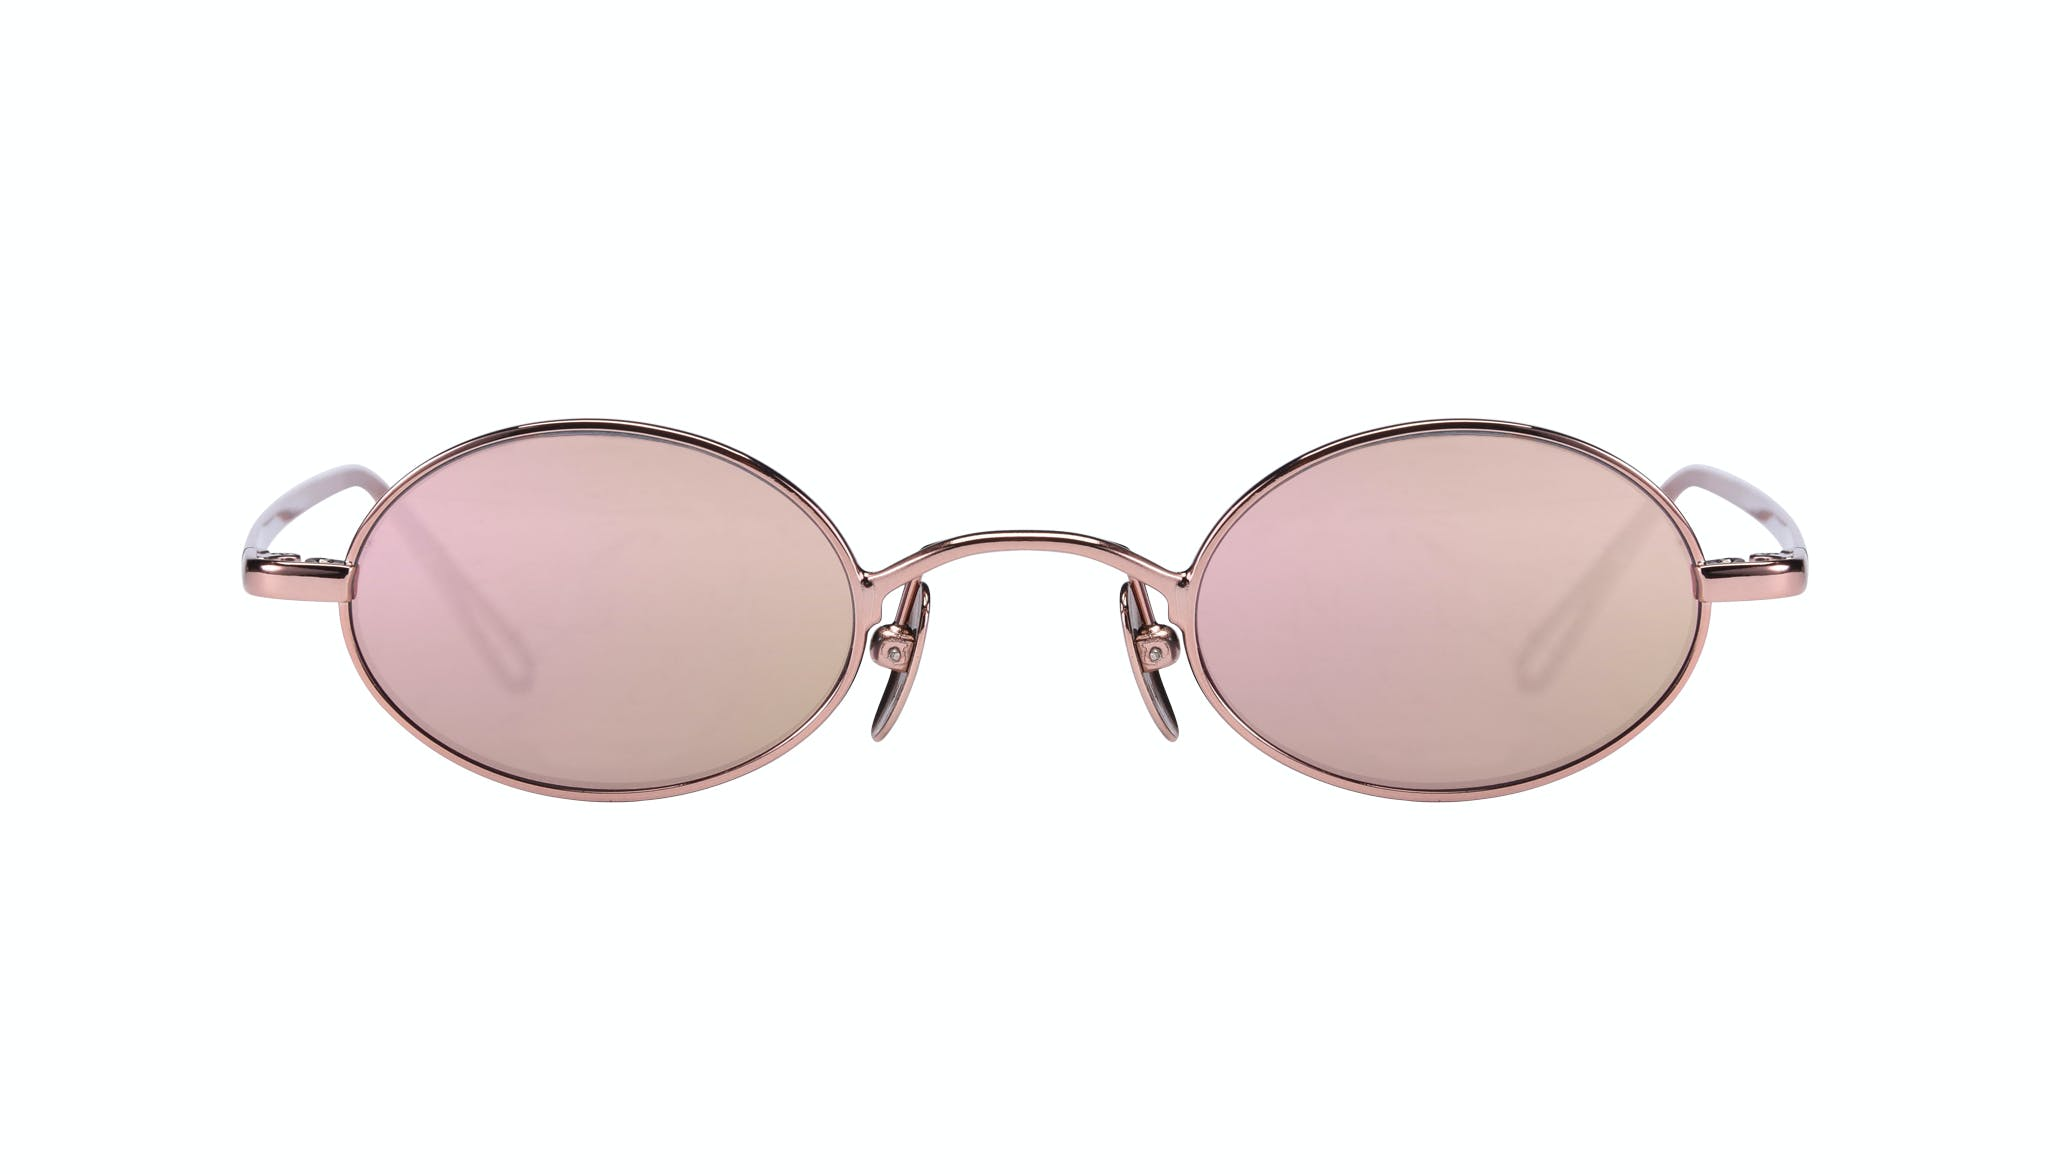 Affordable Fashion Glasses Round Sunglasses Women Stellar Rose Gold Front